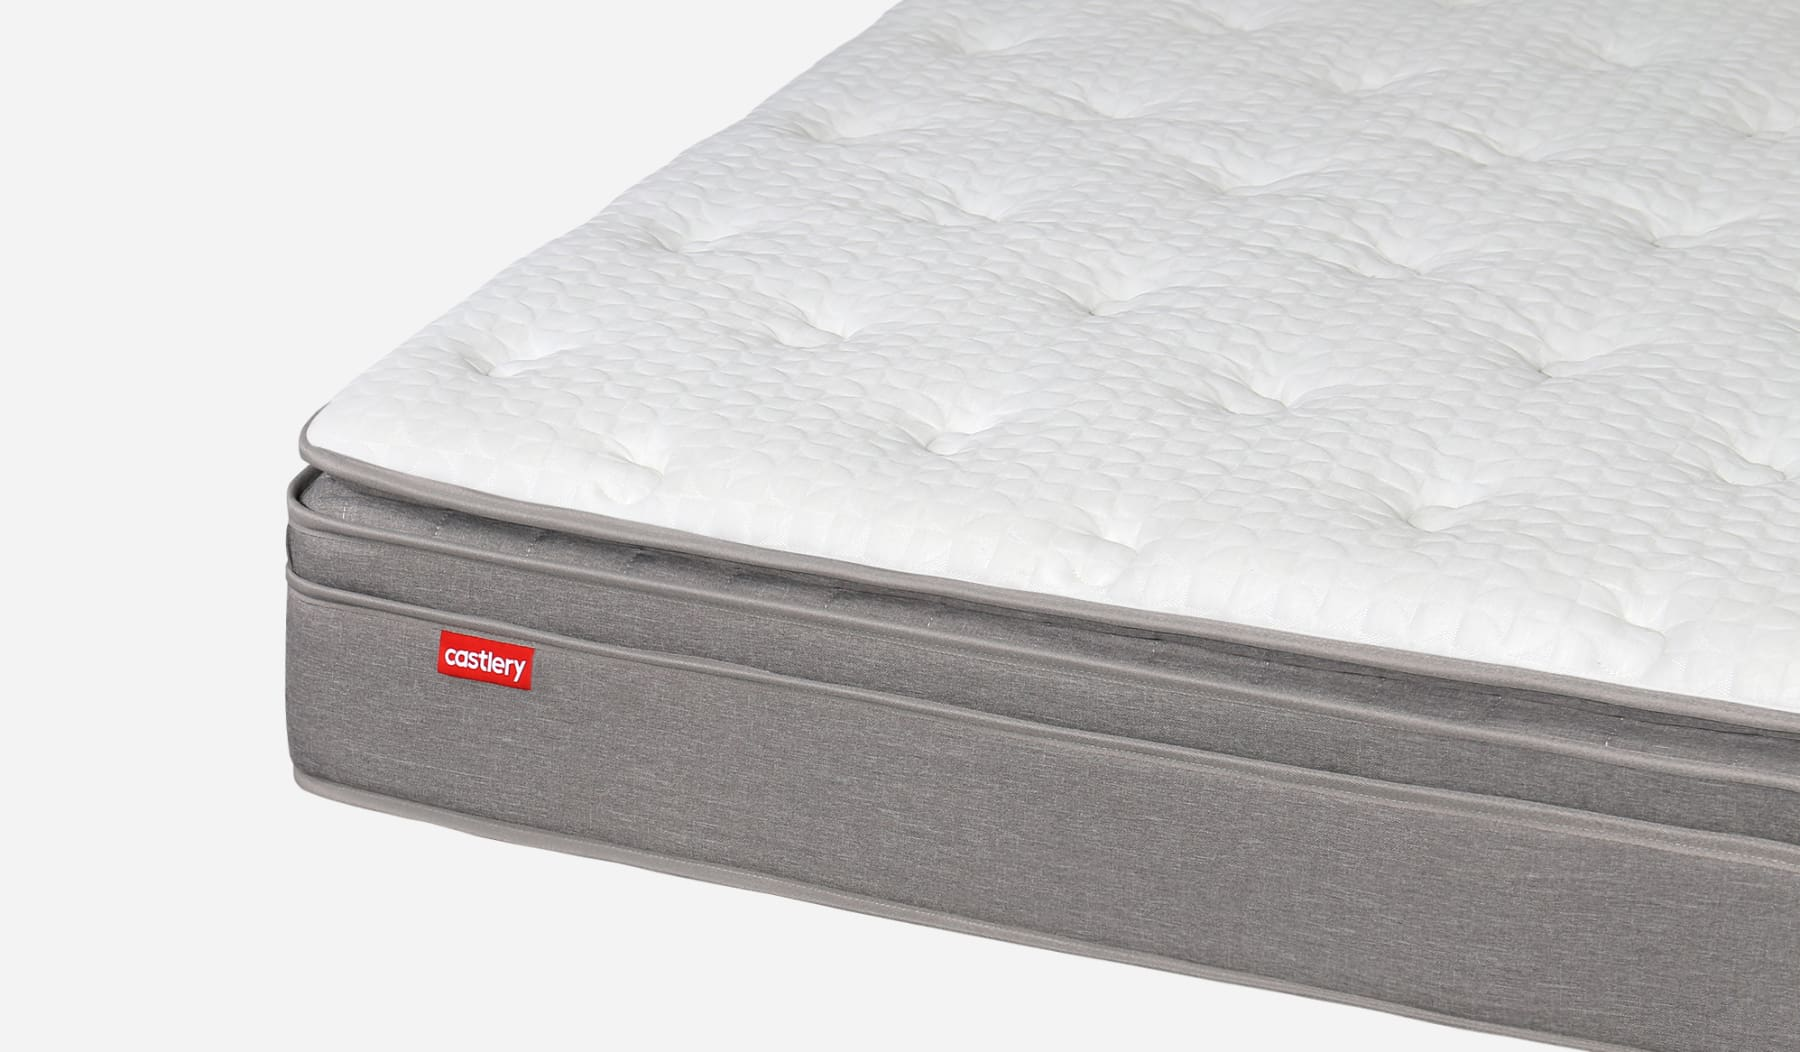 cornell mattress double pocket spring